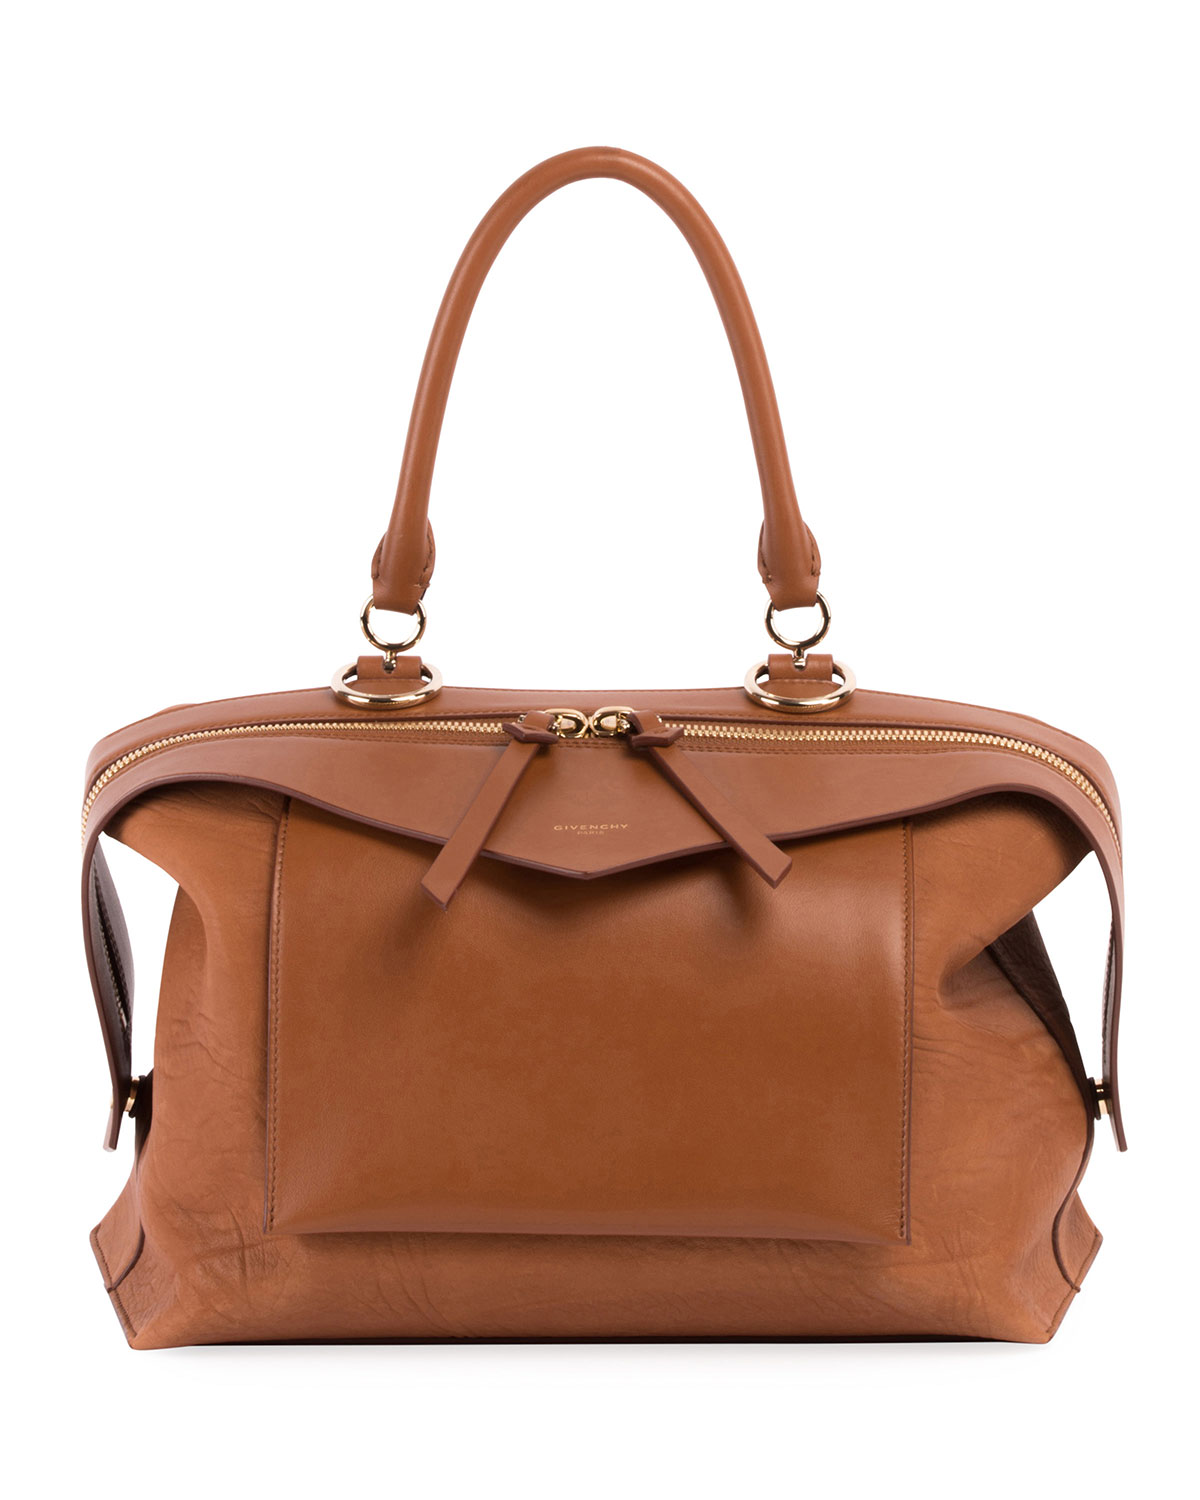 4b2f60416bc3 Givenchy Sway Small Leather Top-Handle Bag